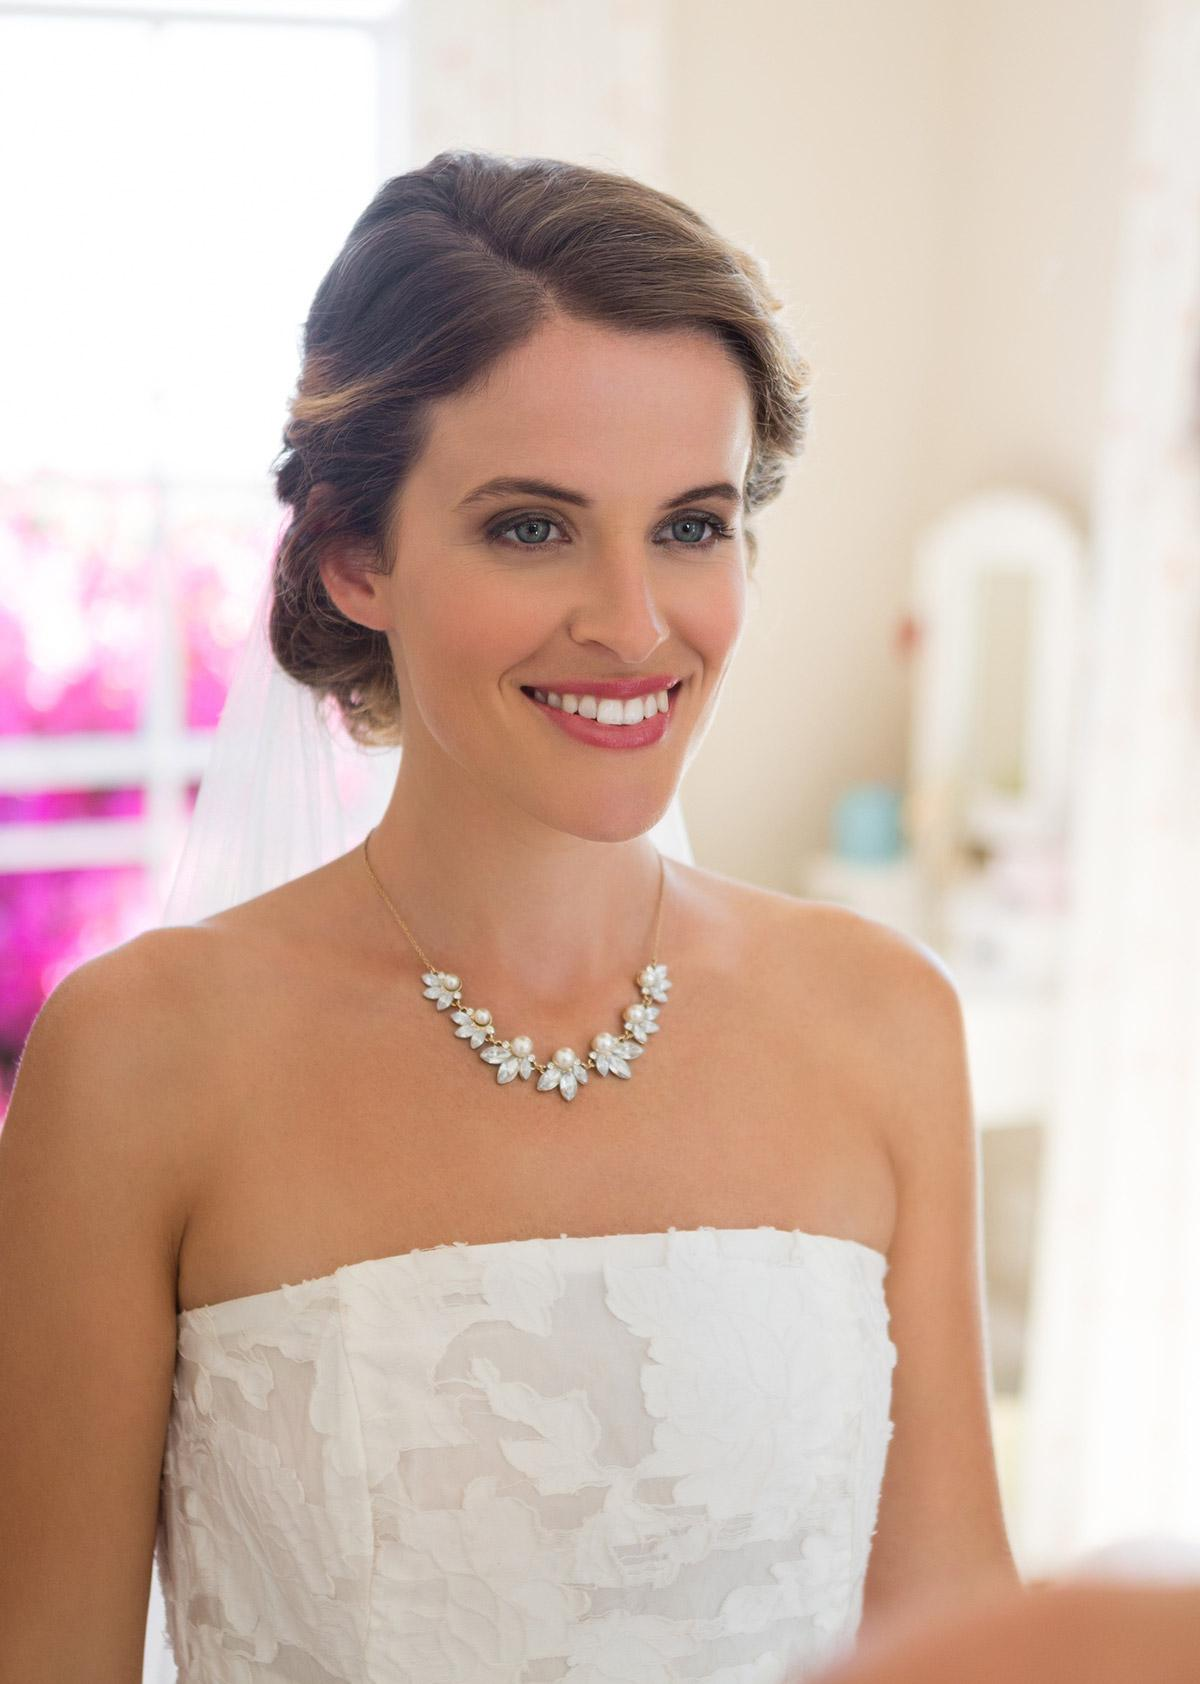 Close up image of a bride wearing a statement diamond necklace and strapless wedding dress